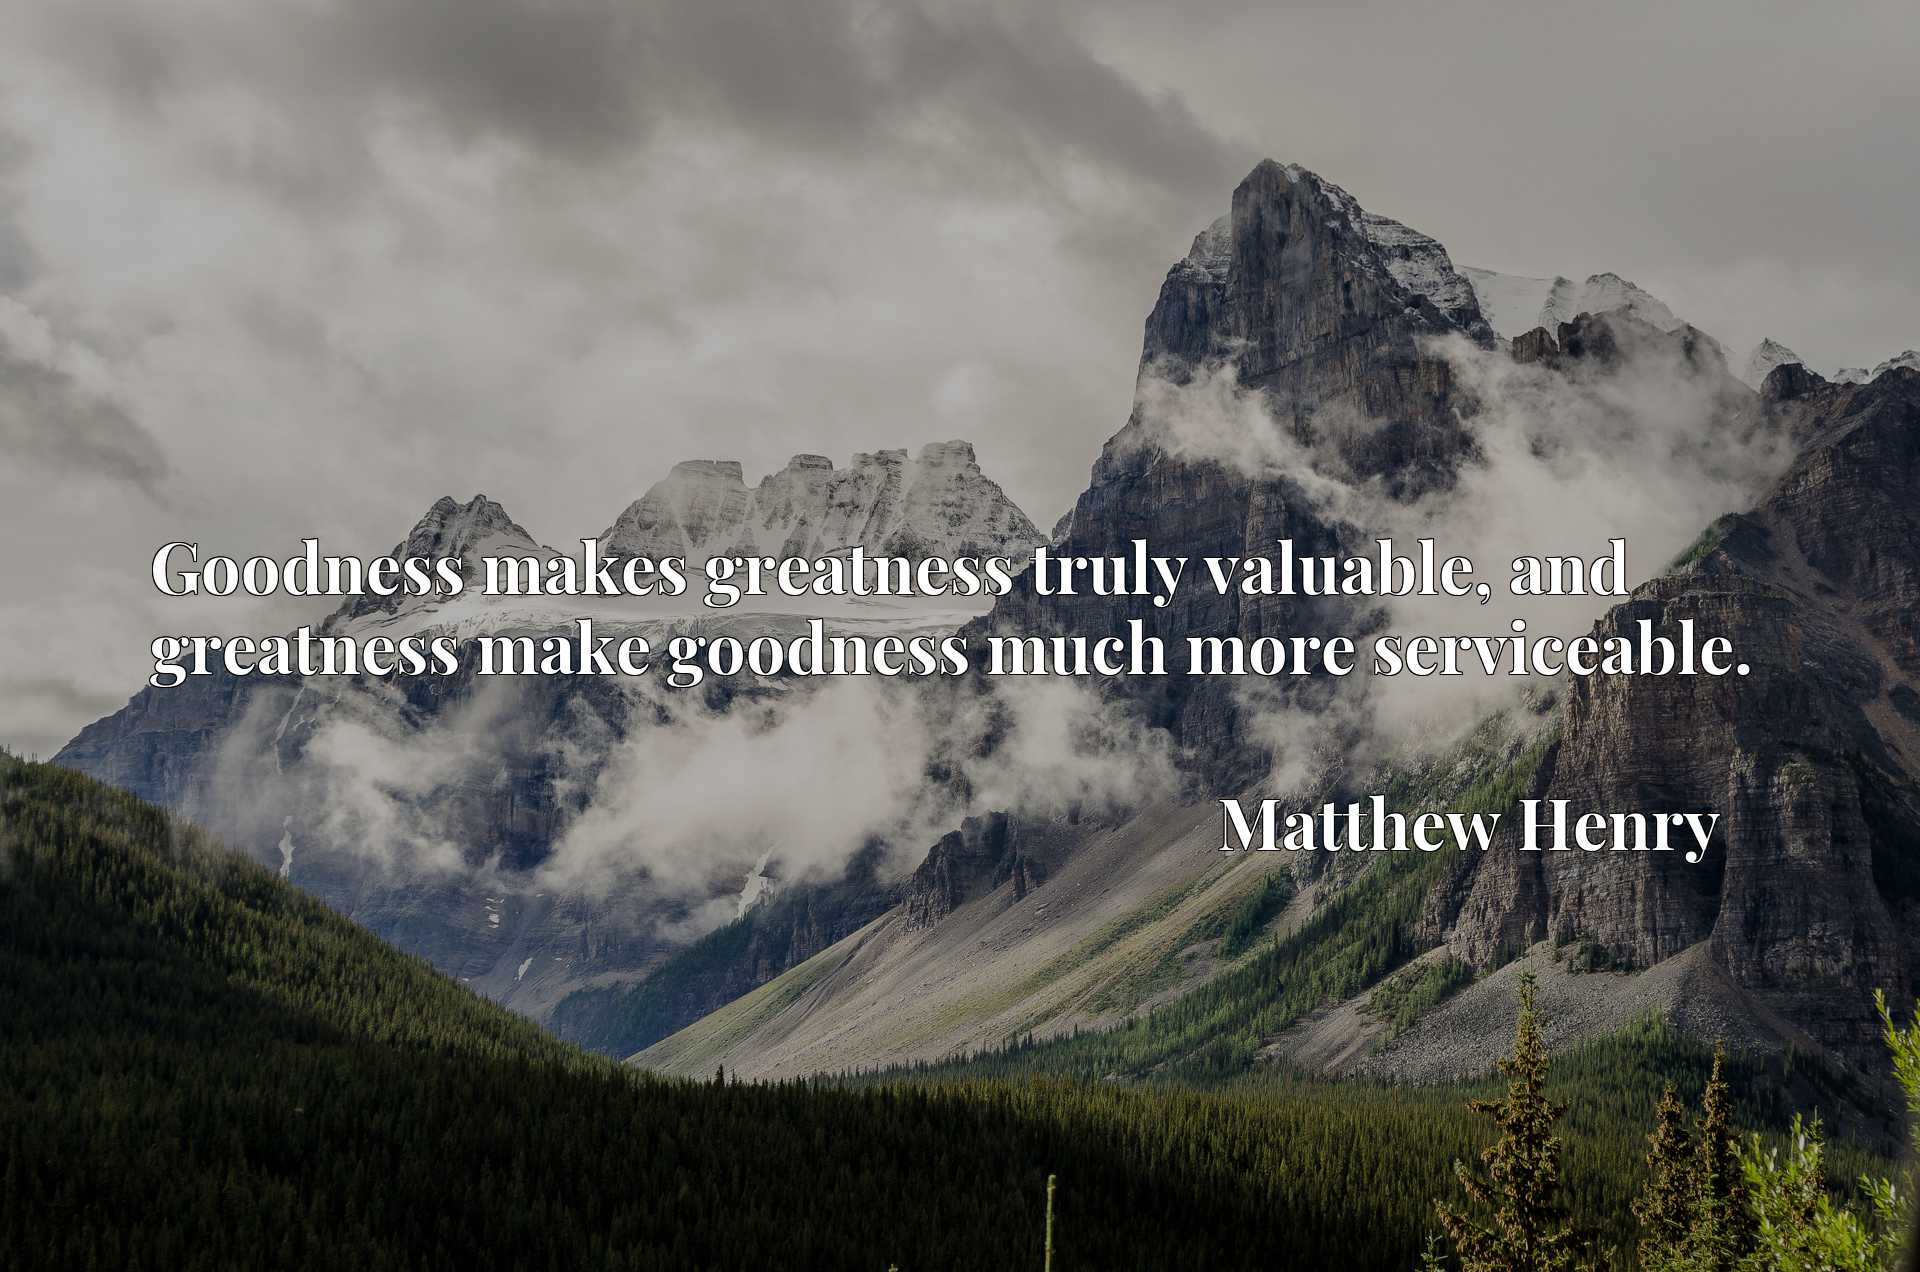 Goodness makes greatness truly valuable, and greatness make goodness much more serviceable.